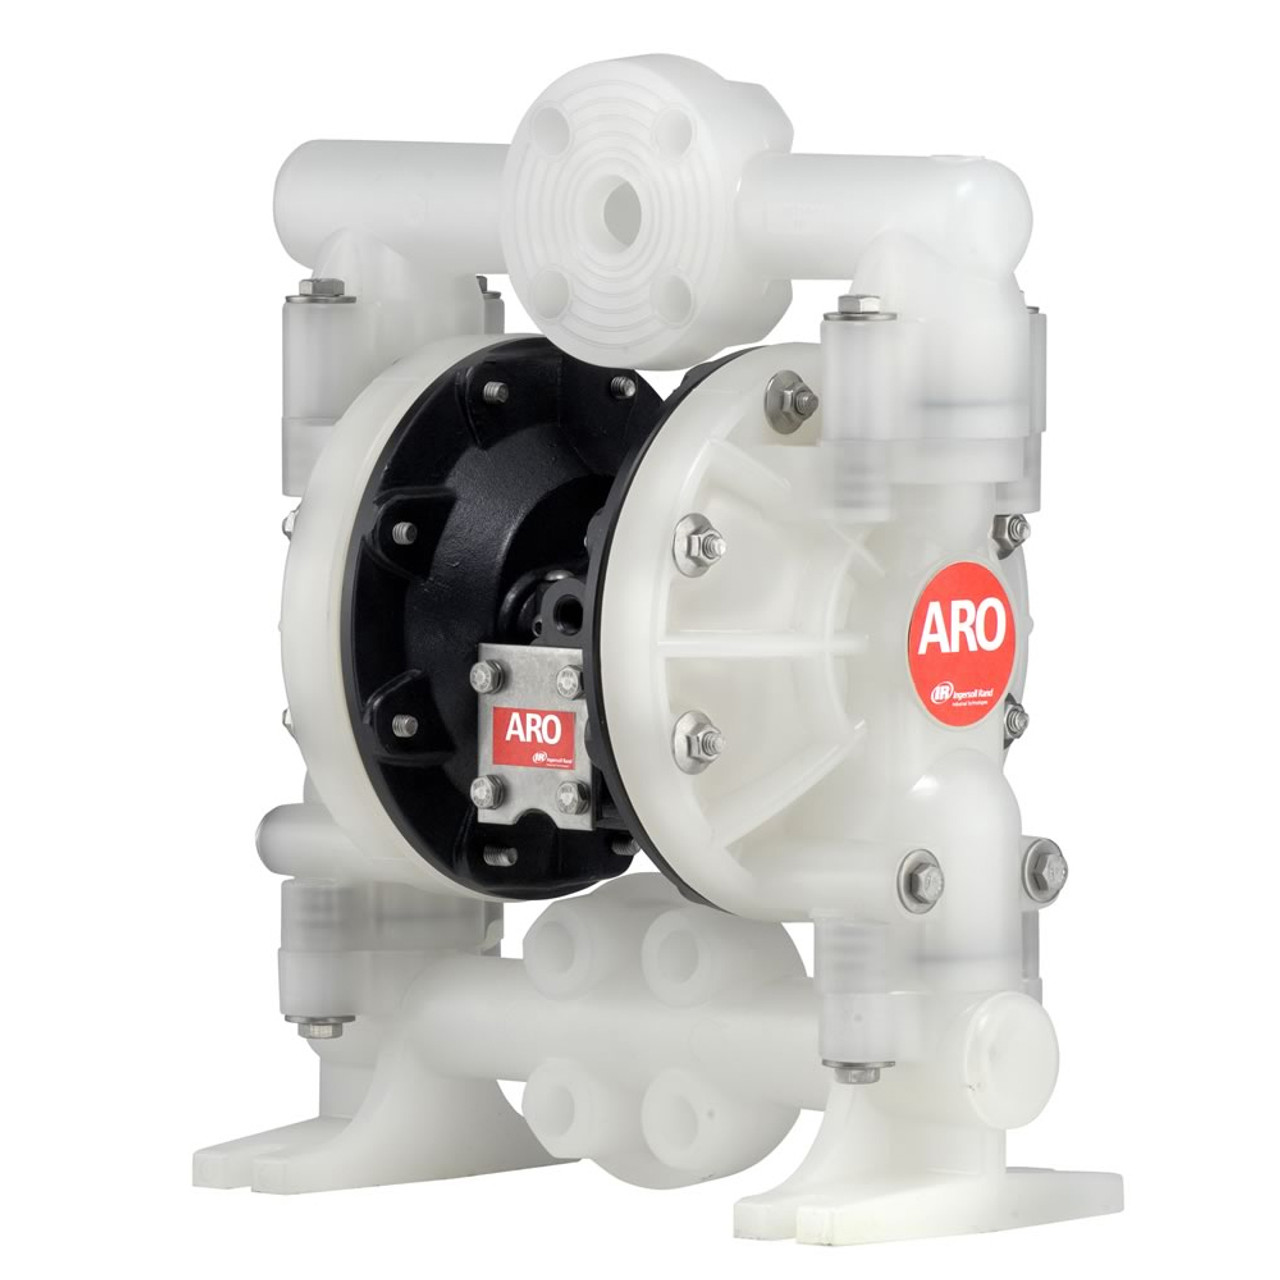 Aro pro series 1 in non metallic air operated diaphragm pump w non metallic air operated diaphragm pump w ptfe diaphragm john m ellsworth co inc ccuart Choice Image